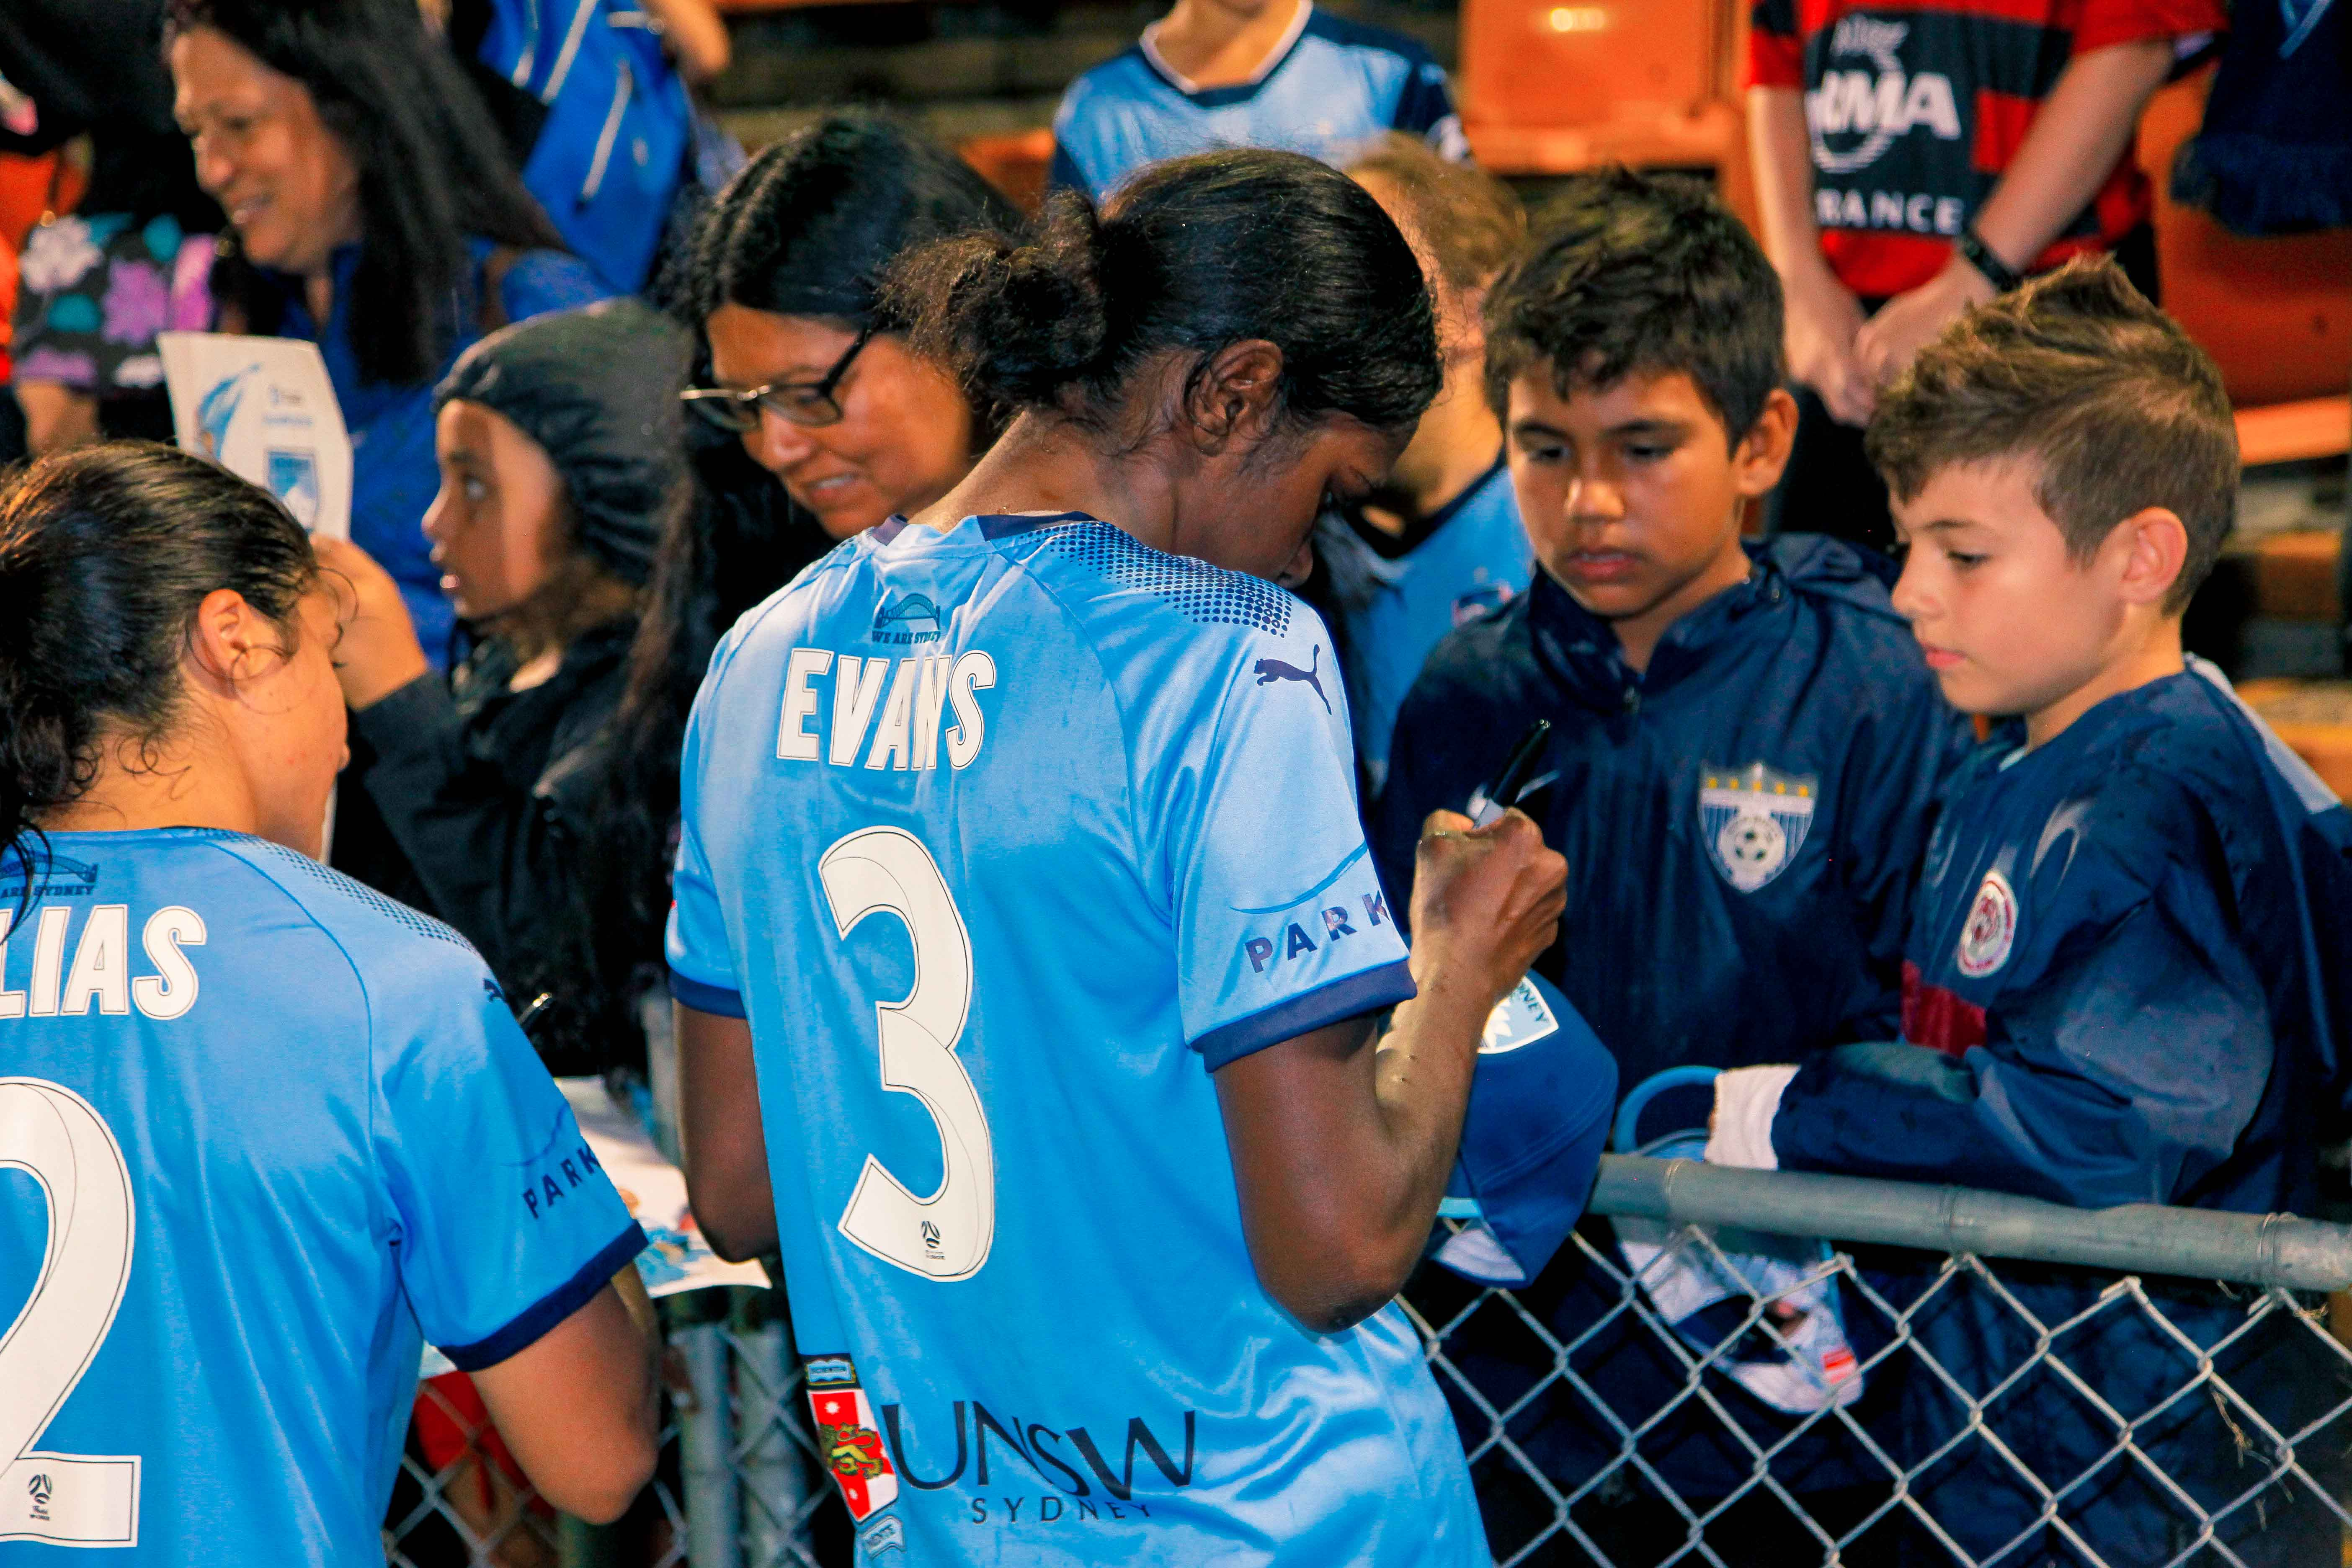 Evans signs autographs following her Westfield W-League debut